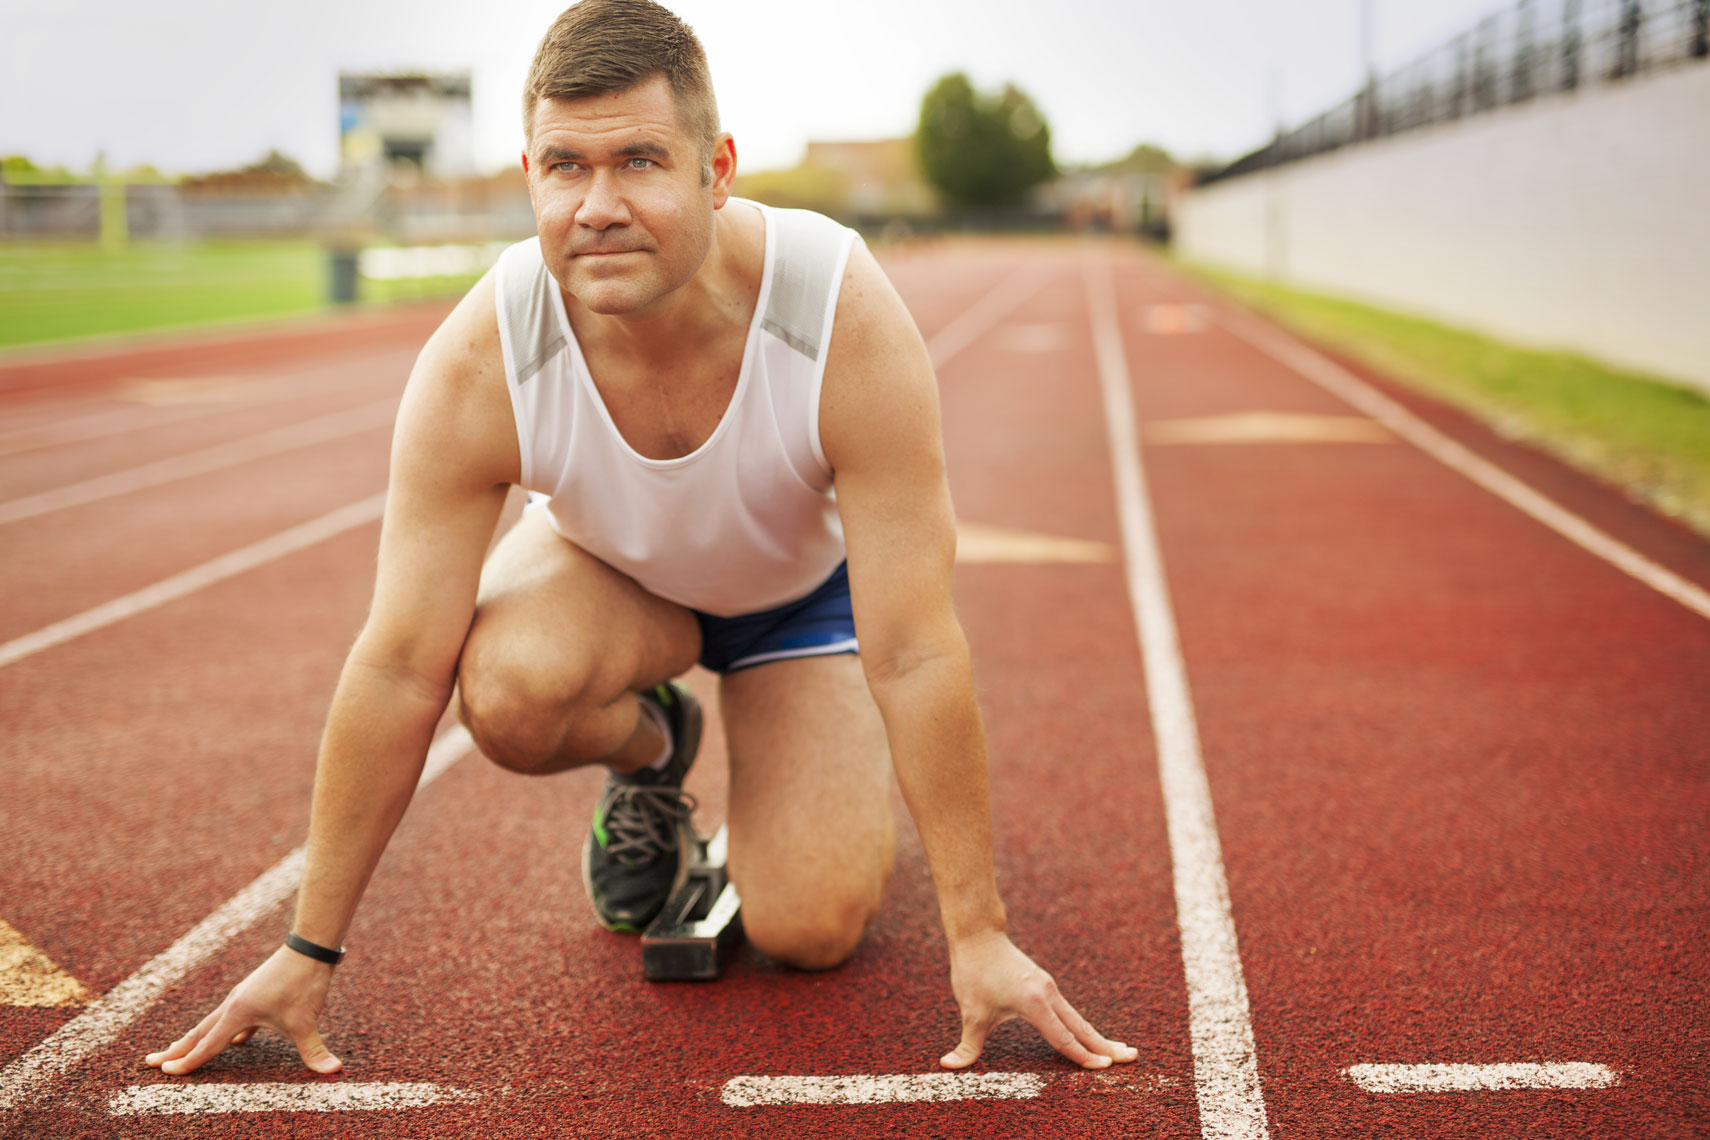 Lifestyle portrait of a man on a track for pharmaceutical advertising